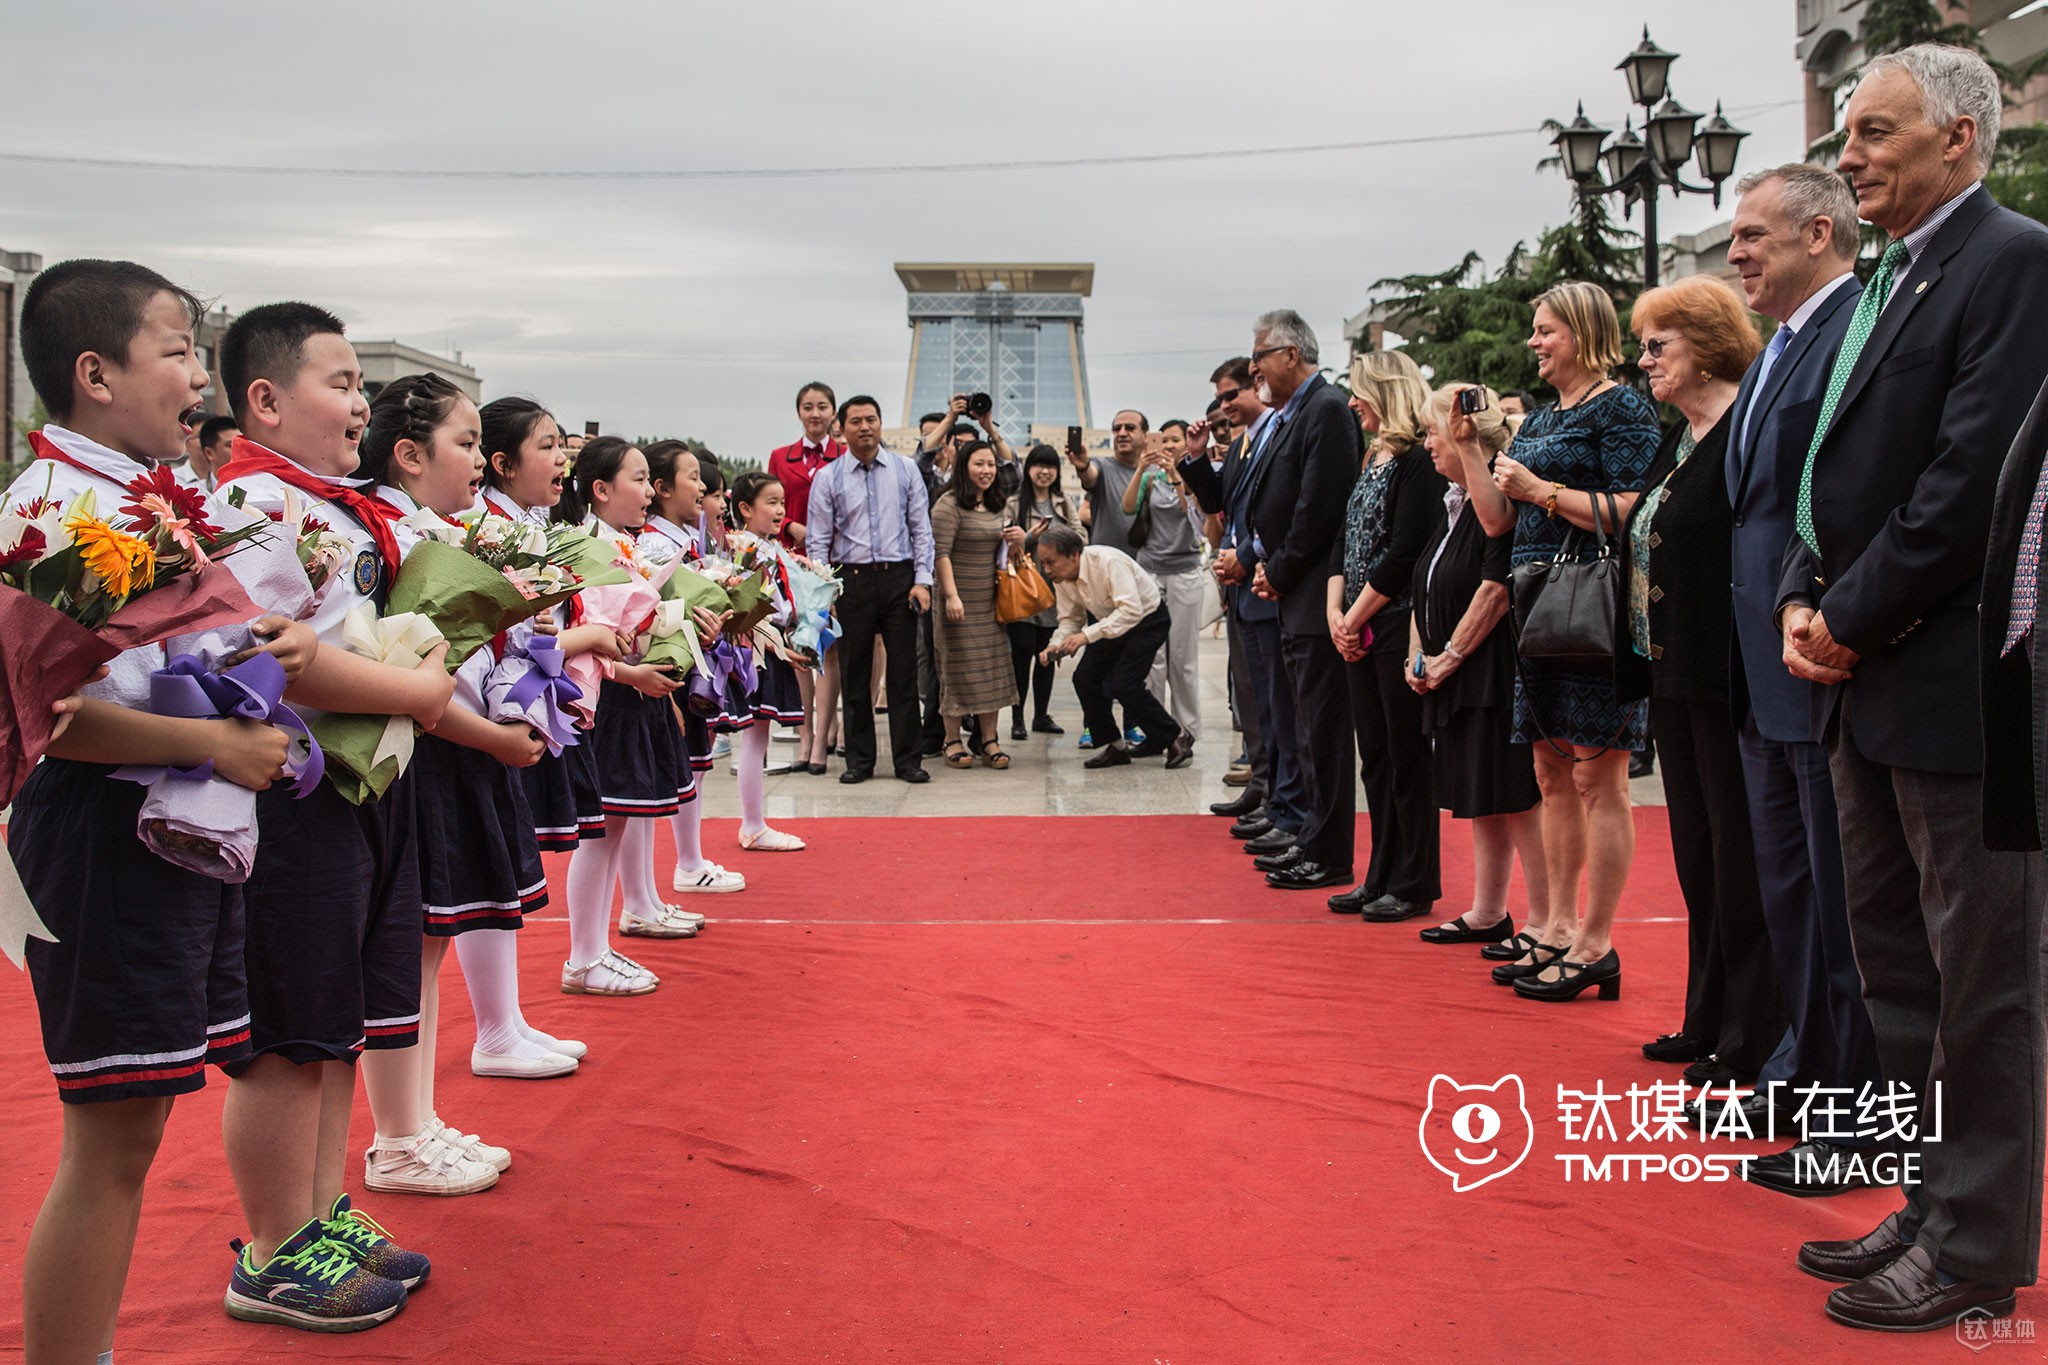 Pupils saluted and presented flowers to the mayors during the welcome ceremony for the delegation at Sias International University. Before the pupils presented the flowers, some mayors took out their phones to take a picture.